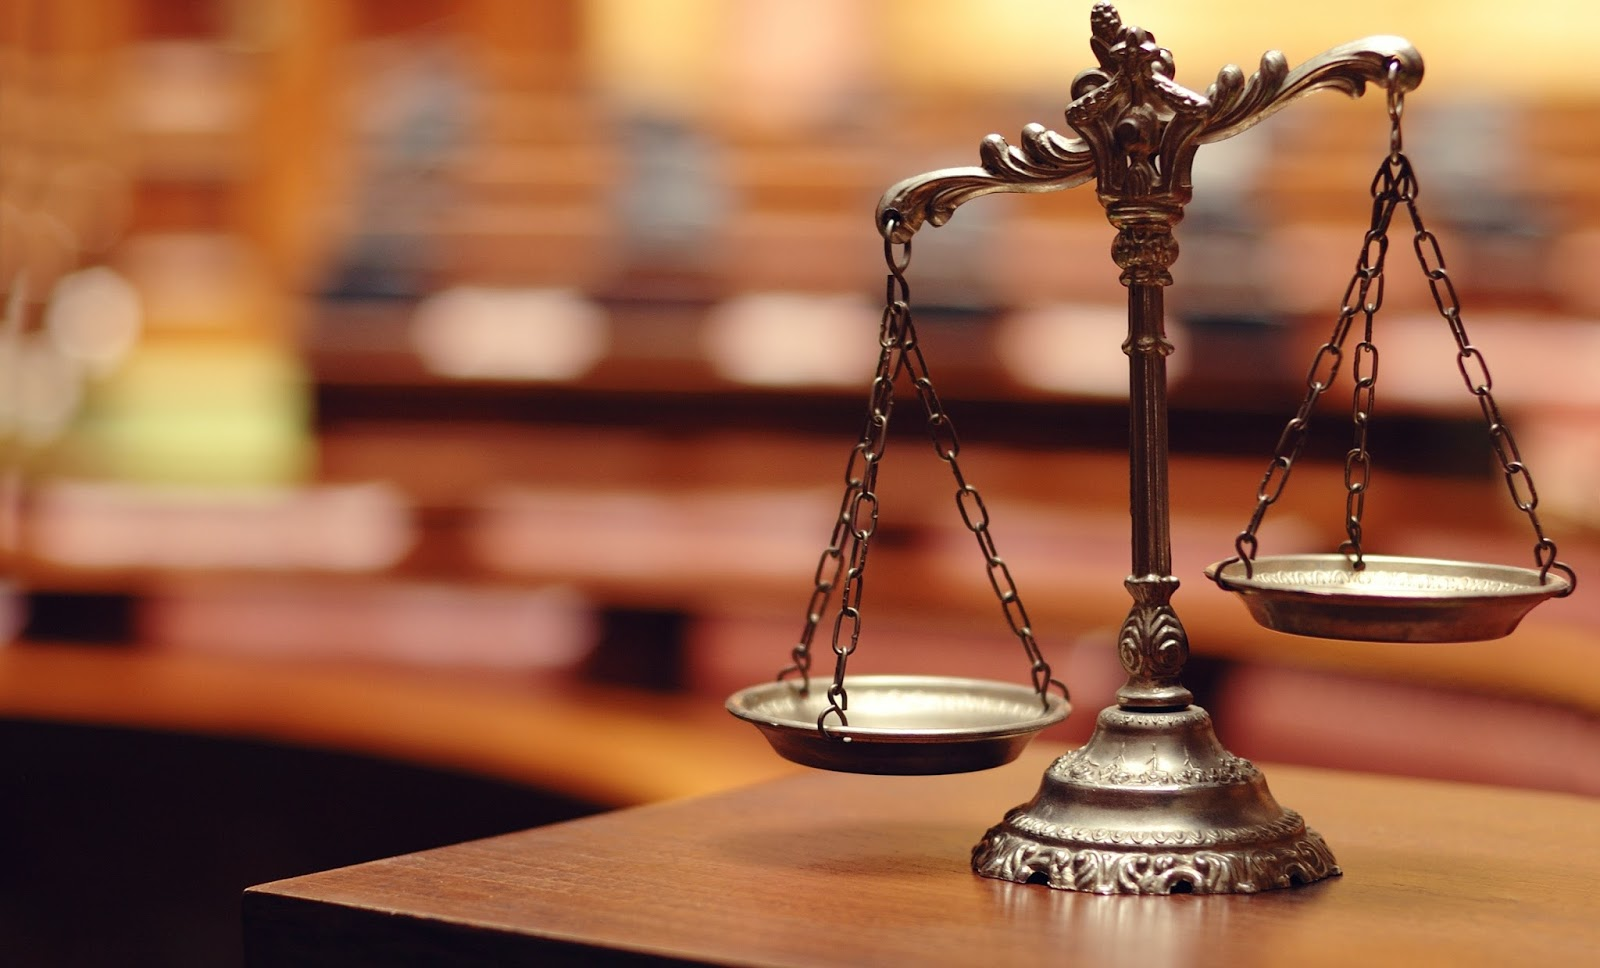 I can't live without him, wife begs court not to grant them divorce